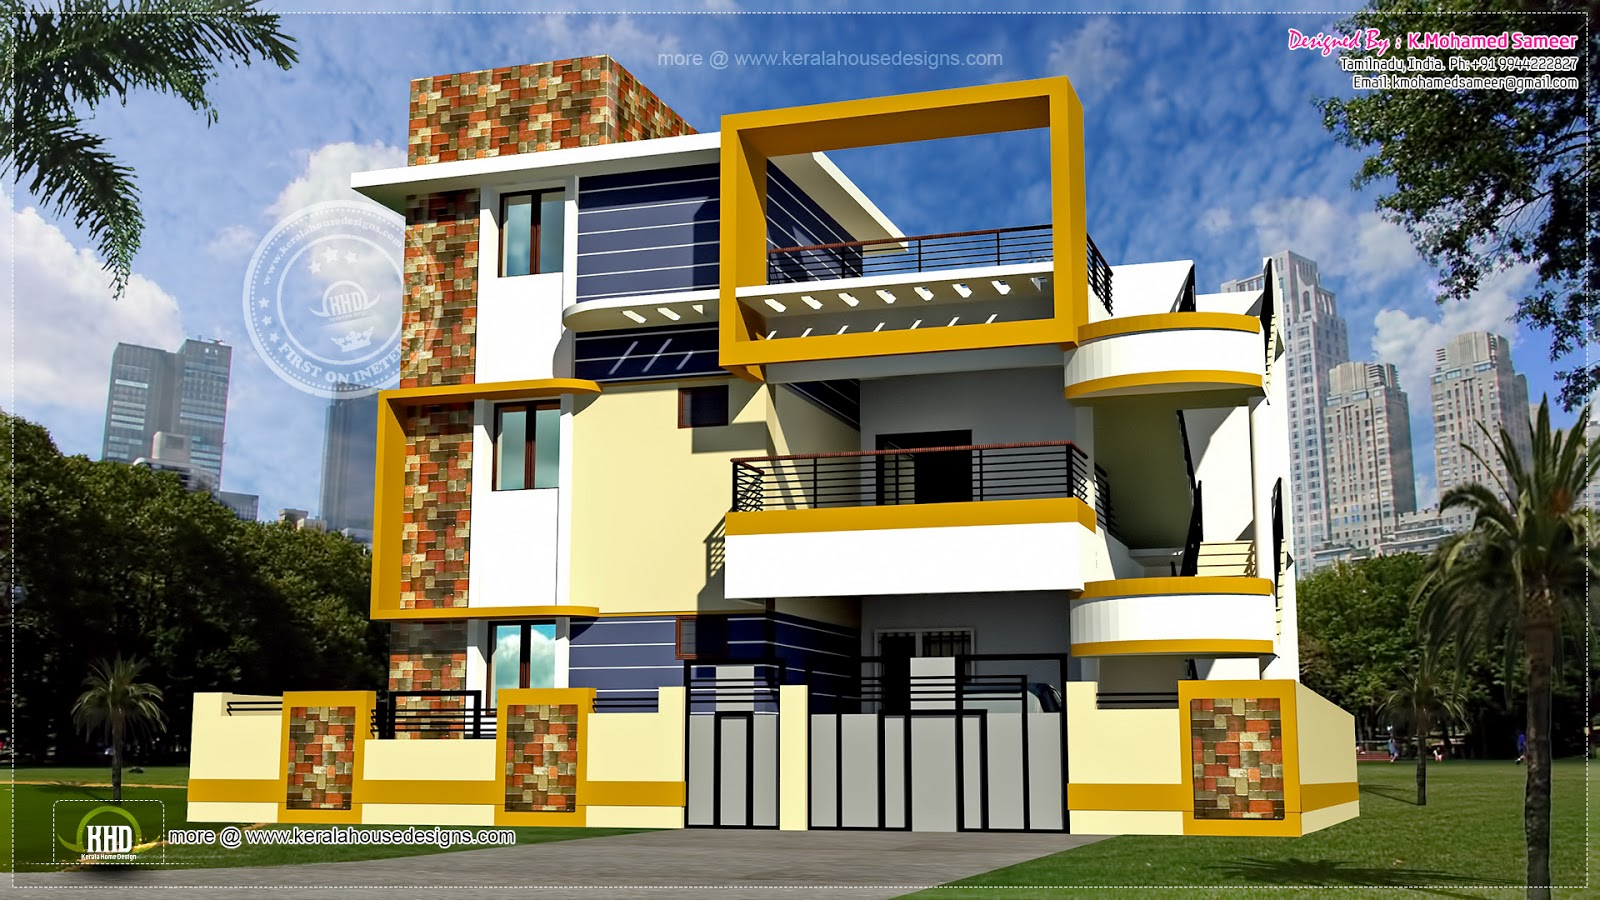 Modern 3 floor tamilnadu house design home kerala plans for Two floor home design